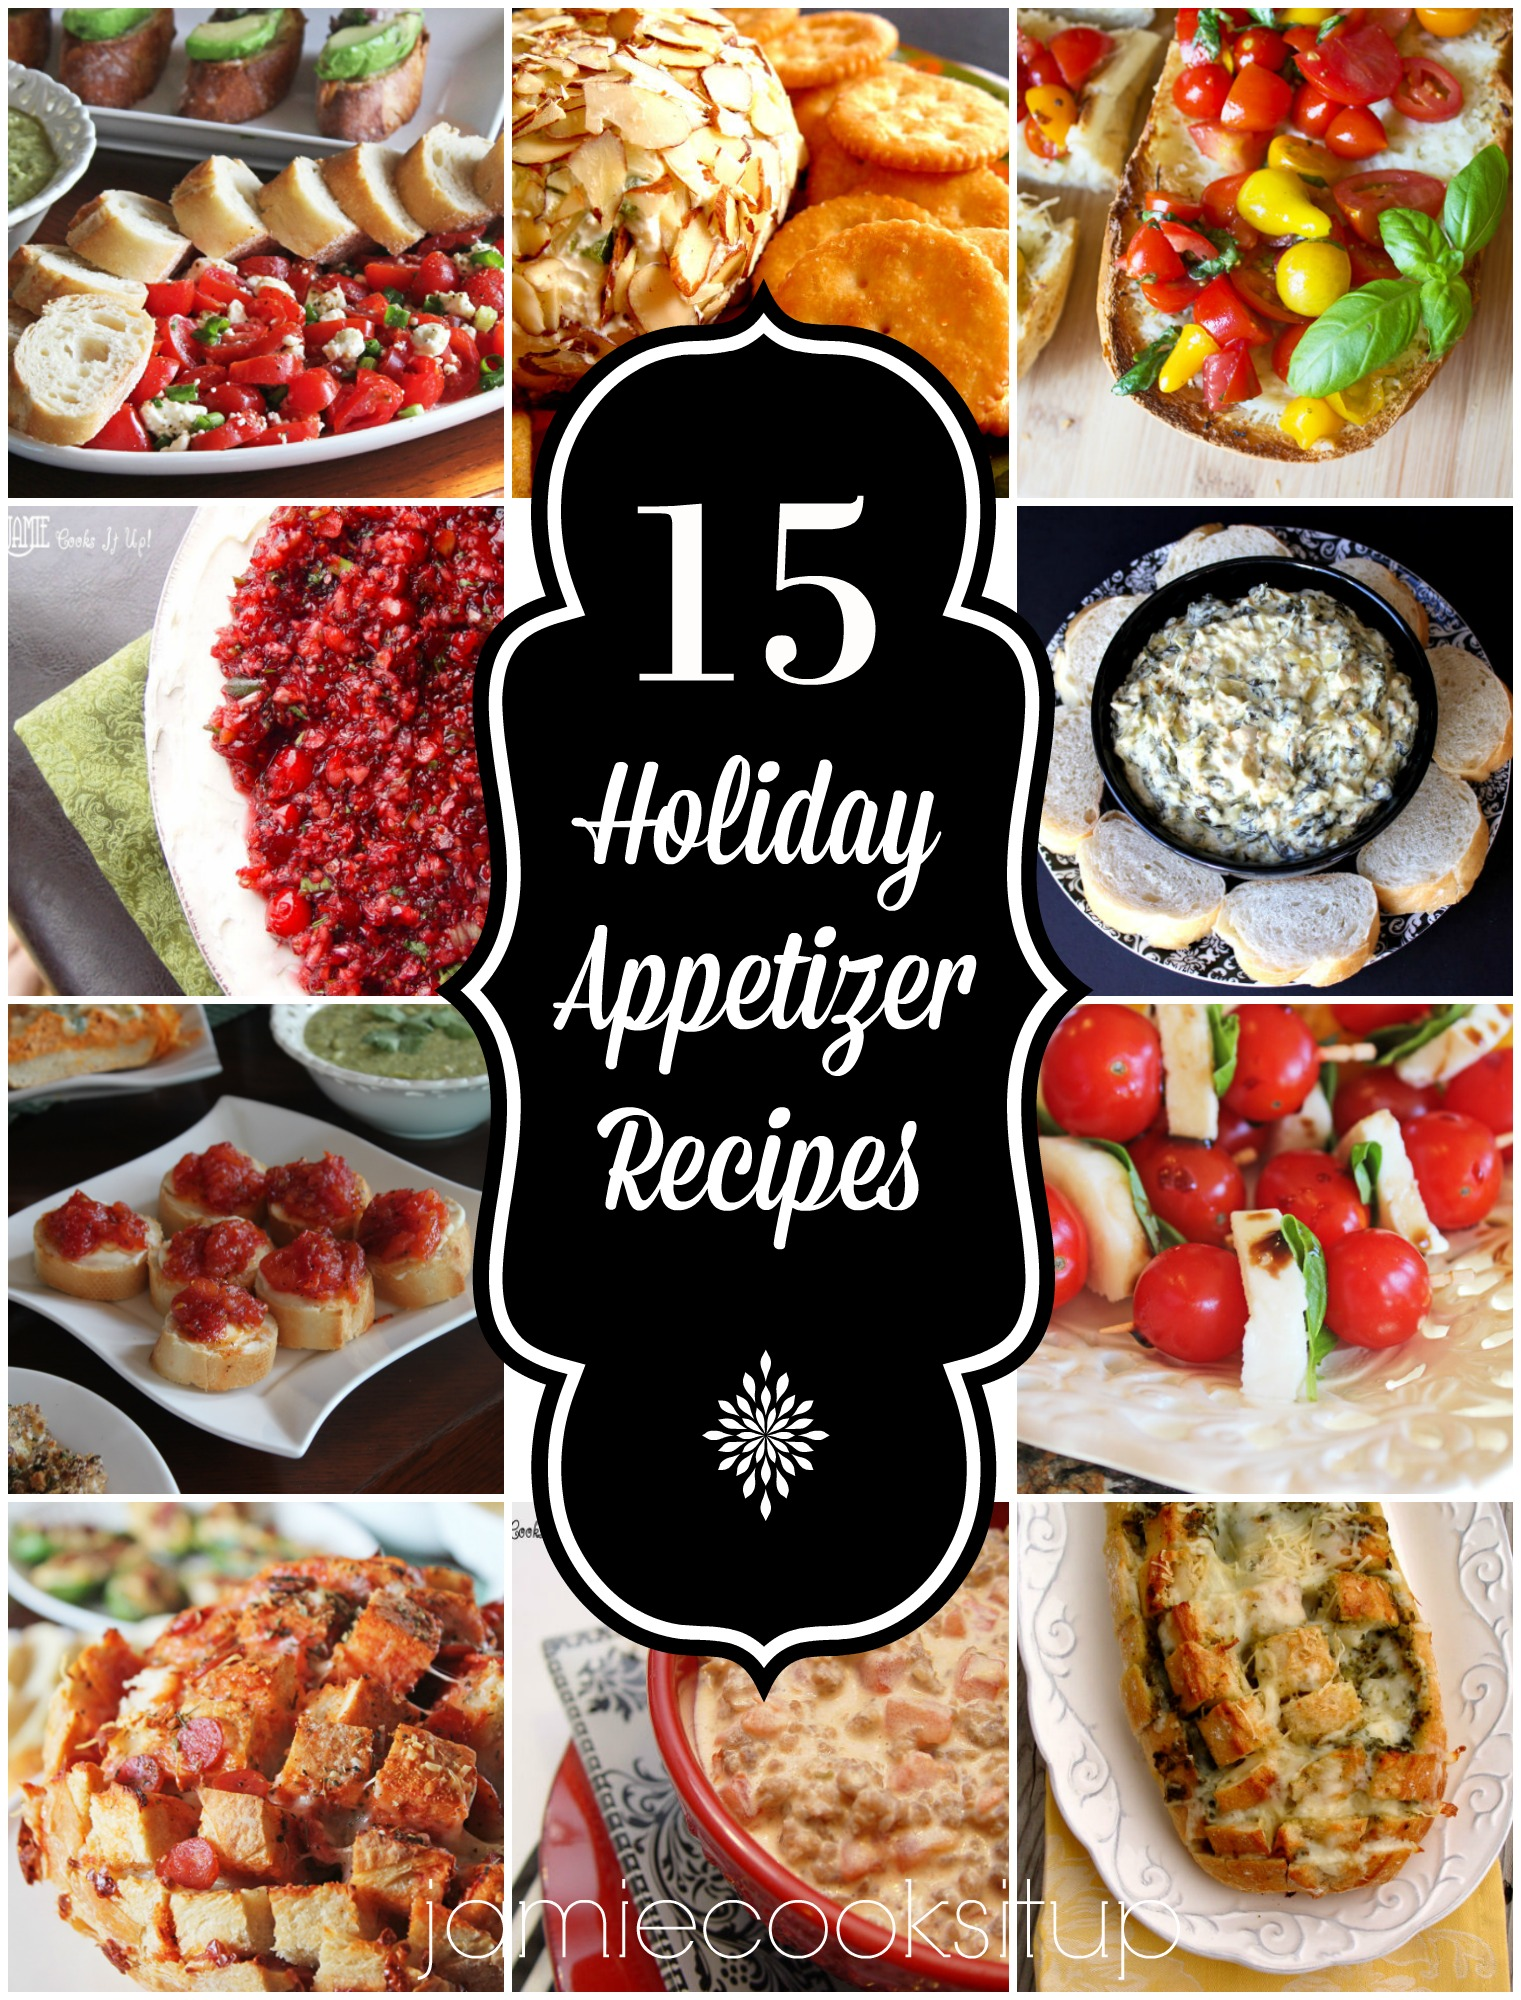 15 Holiday Appetizer Recipes